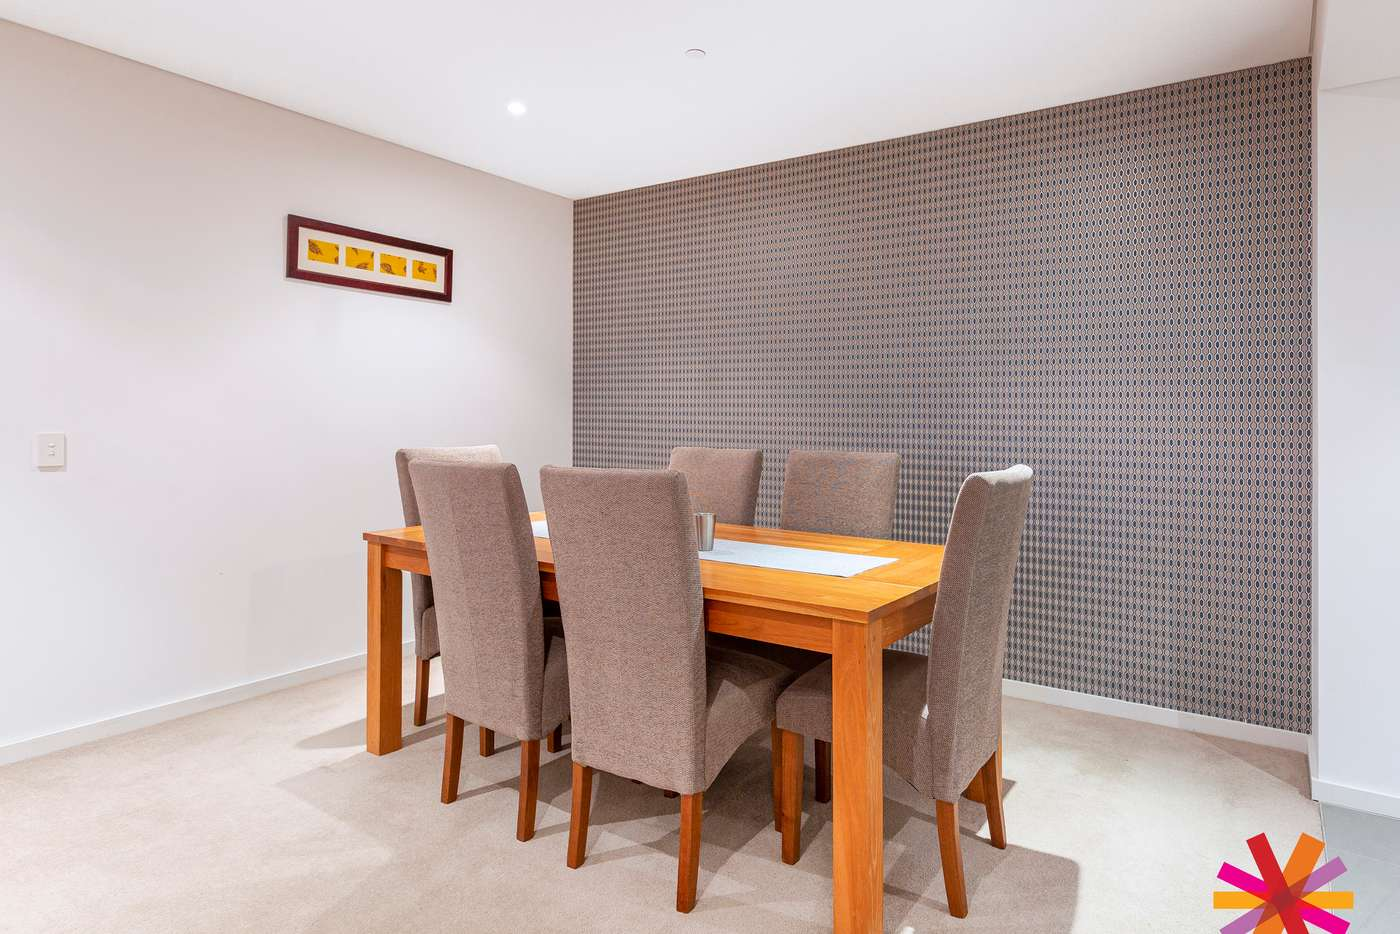 Sixth view of Homely apartment listing, 302/21 Bow River Crescent, Burswood WA 6100